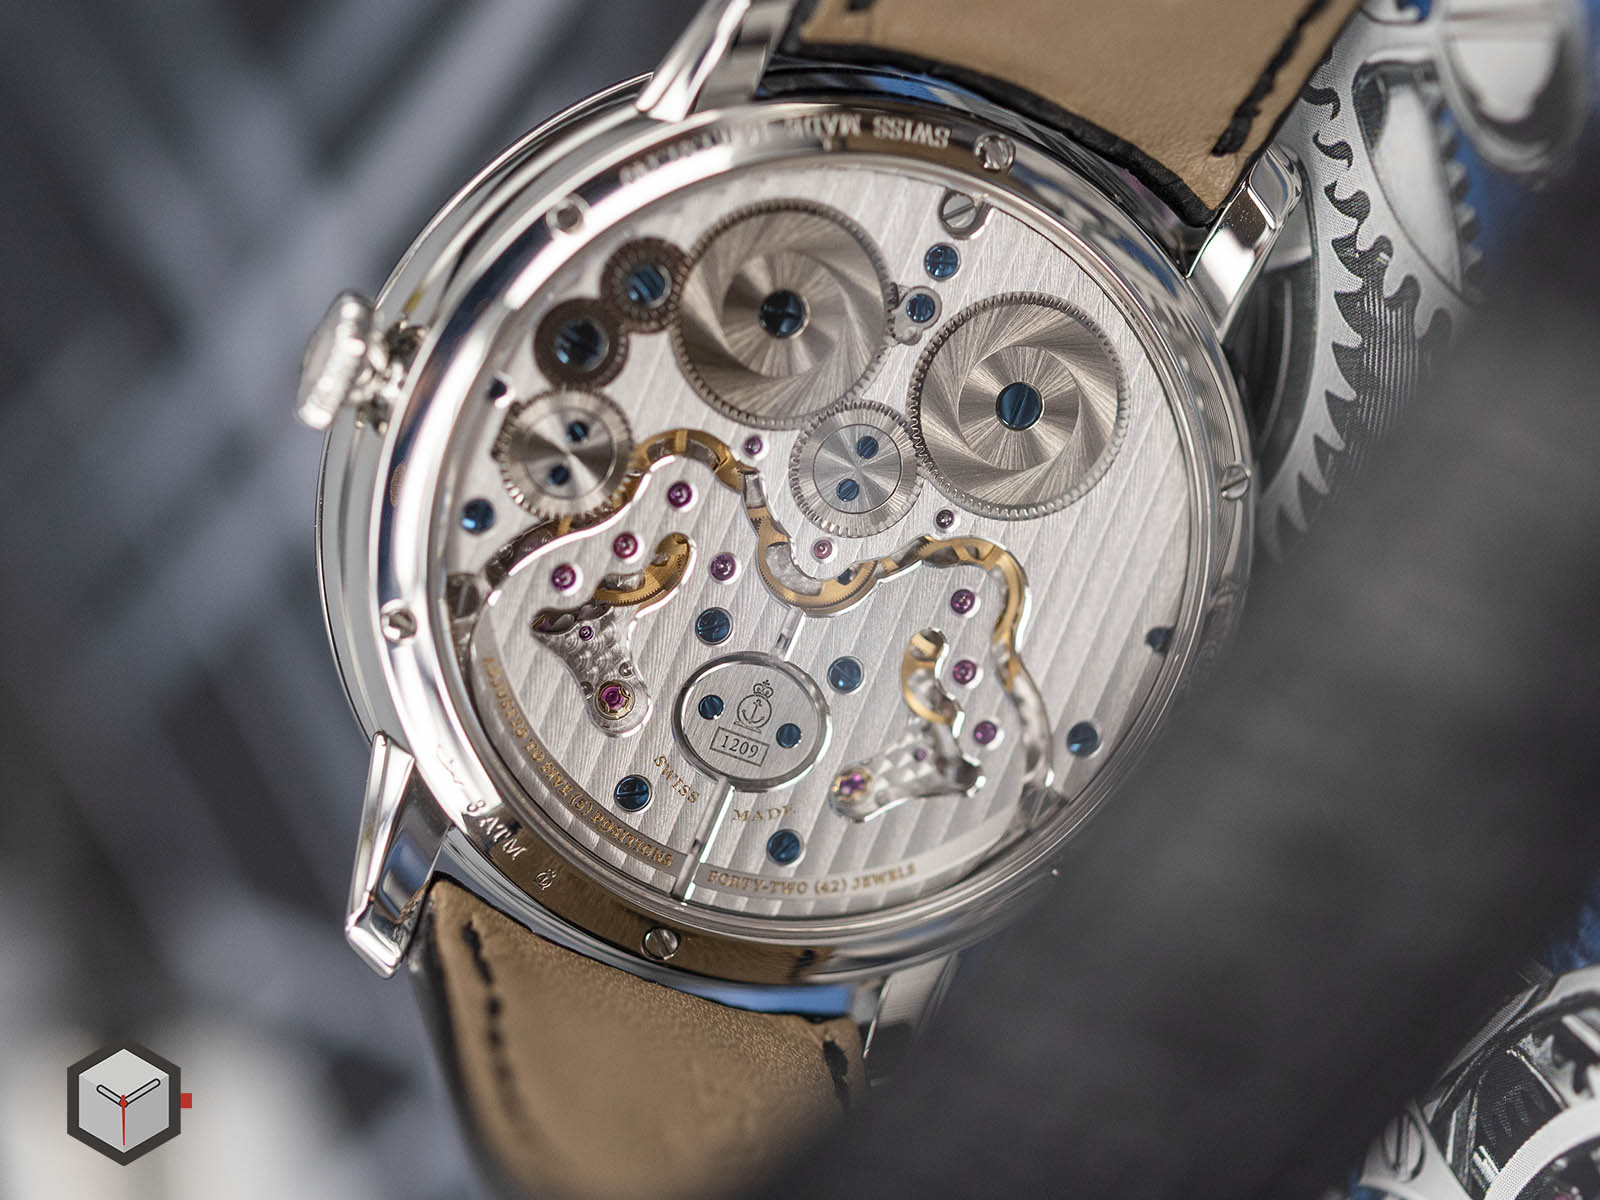 1dgas-s01a-c121s-arnold-son-dbg-equation-gmt-8.jpg